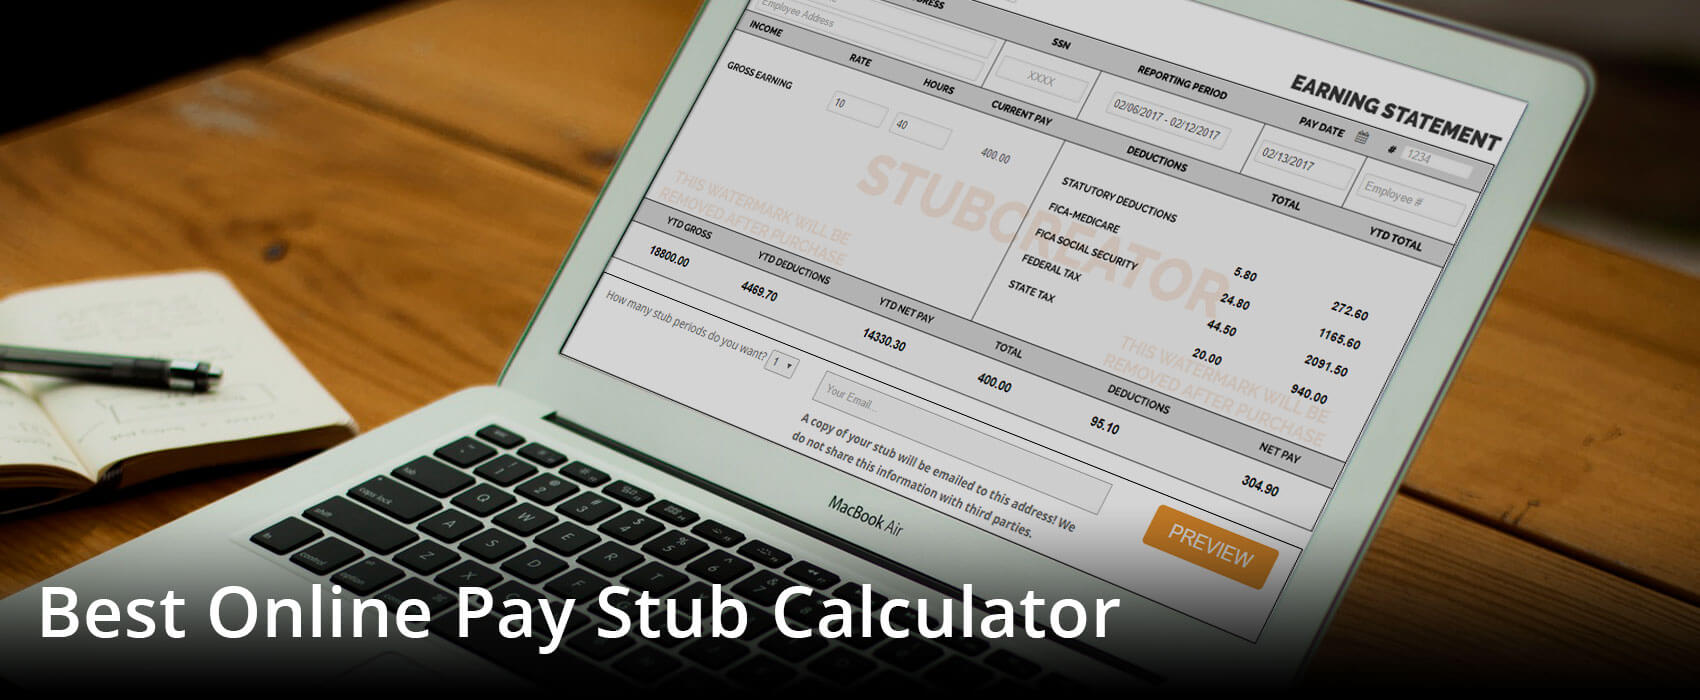 free paycheck calculator